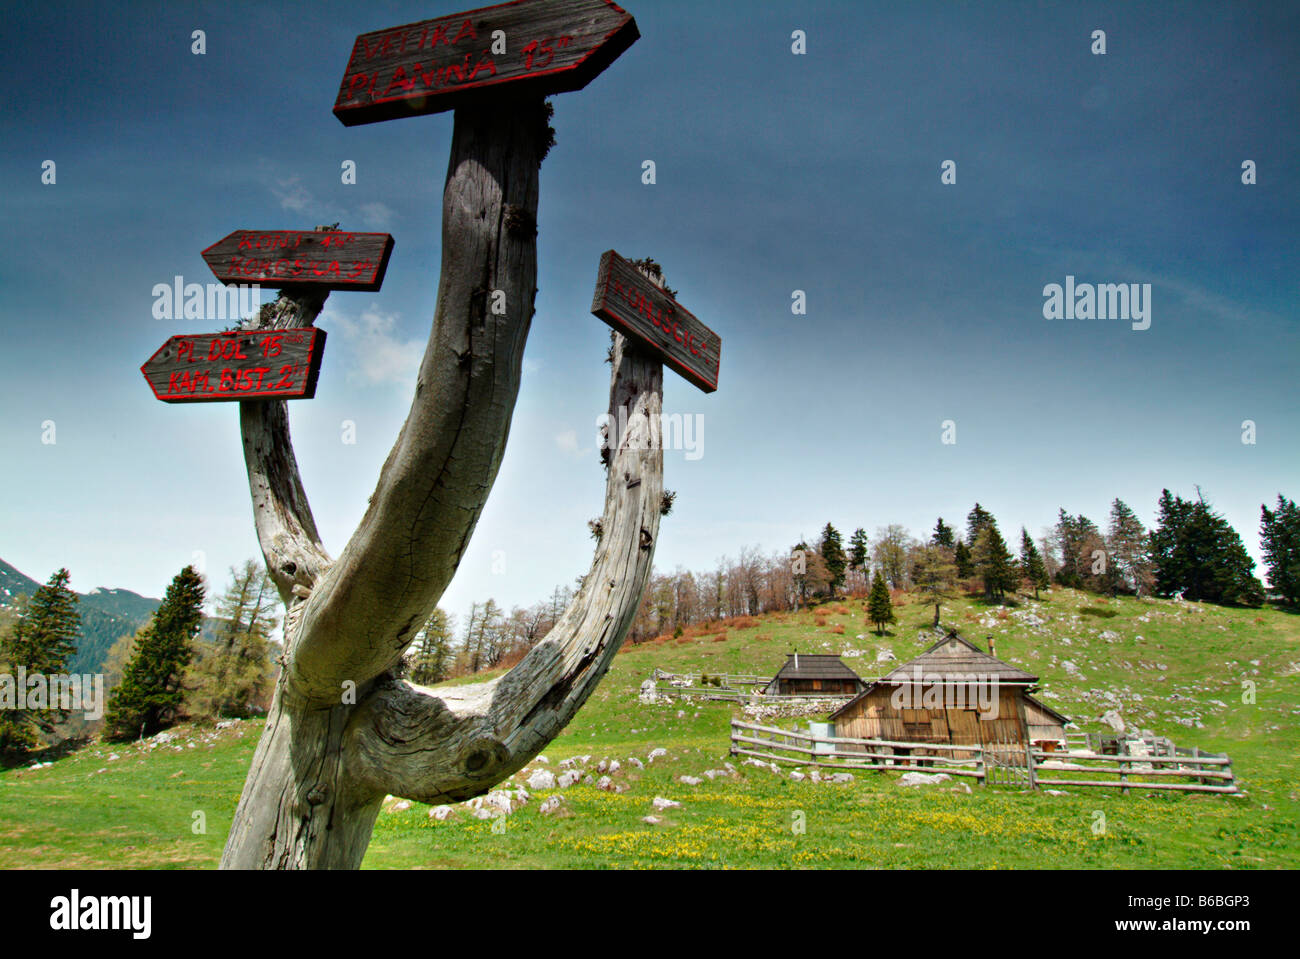 Signboards mounted on tree - Stock Image